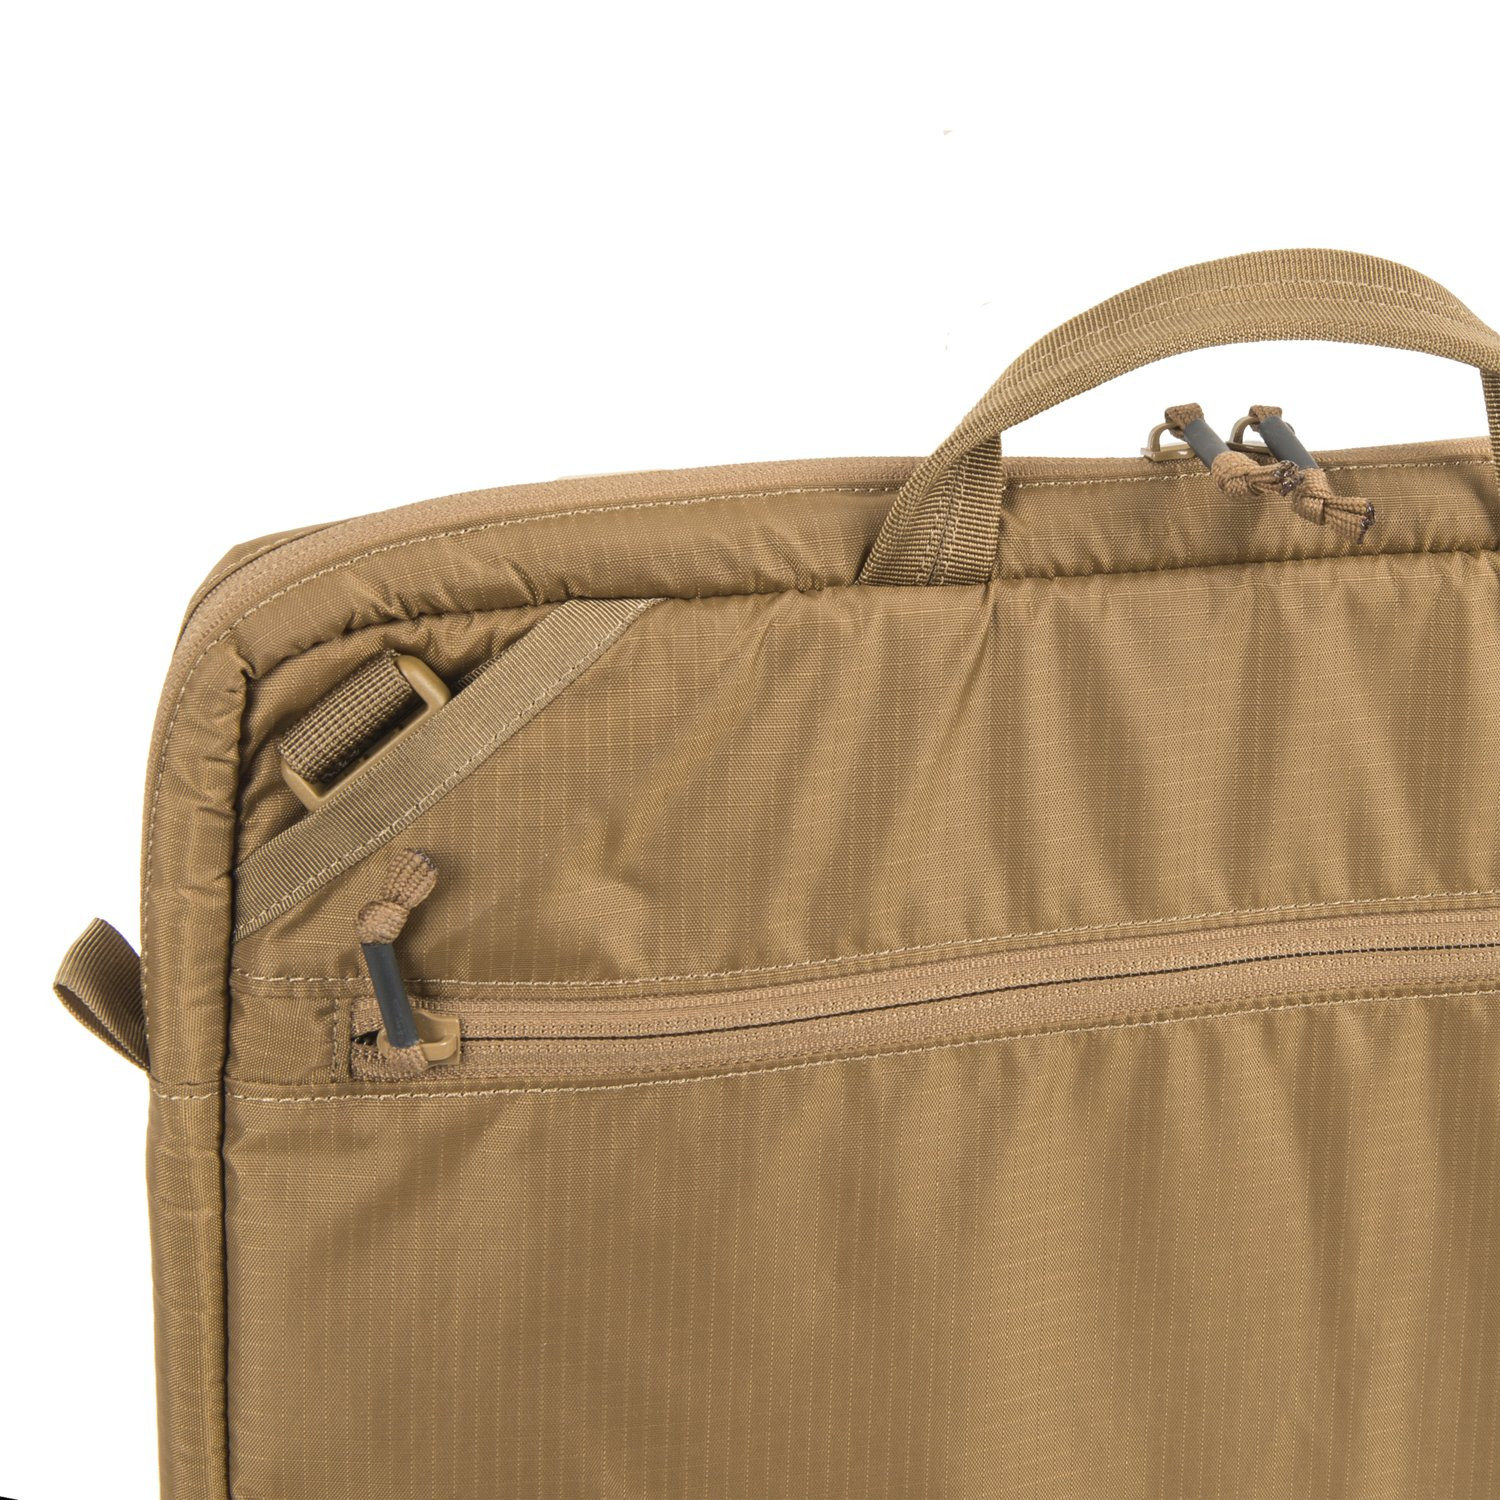 Torba Laptop Briefcase - Nylon Detal 3